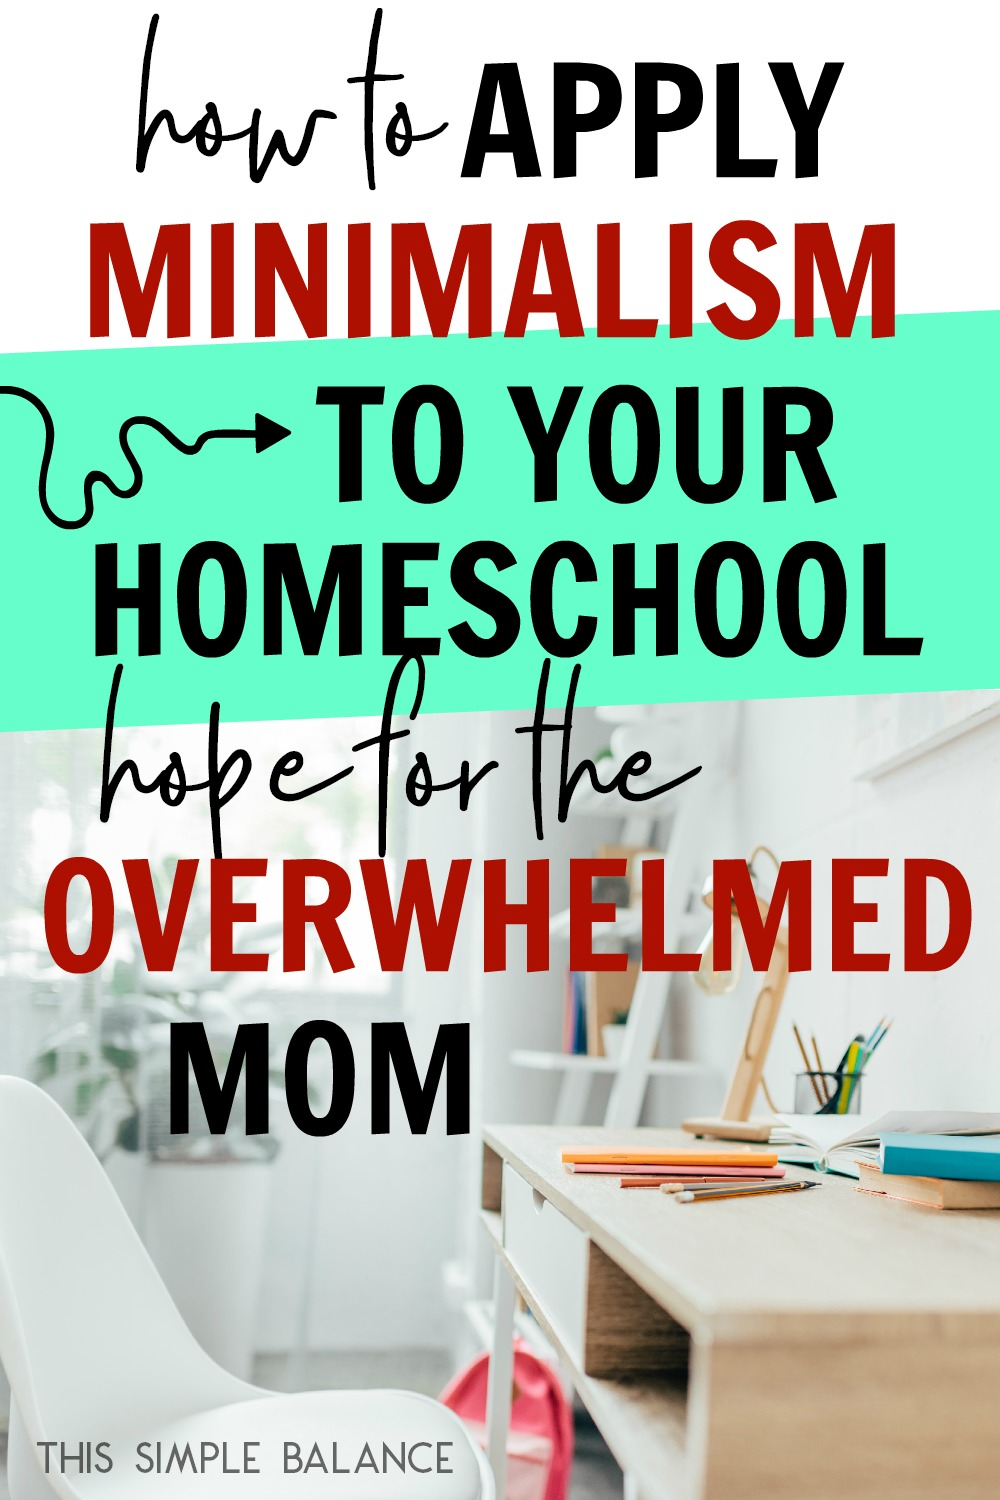 Minimalist homeschooling offers hope to the overwhelmed homeschool mom: get help separating the necessary from the clutter and finally have homeschooling be what you originally wanted it to be (NOT extremely stressful and sanity stealing)